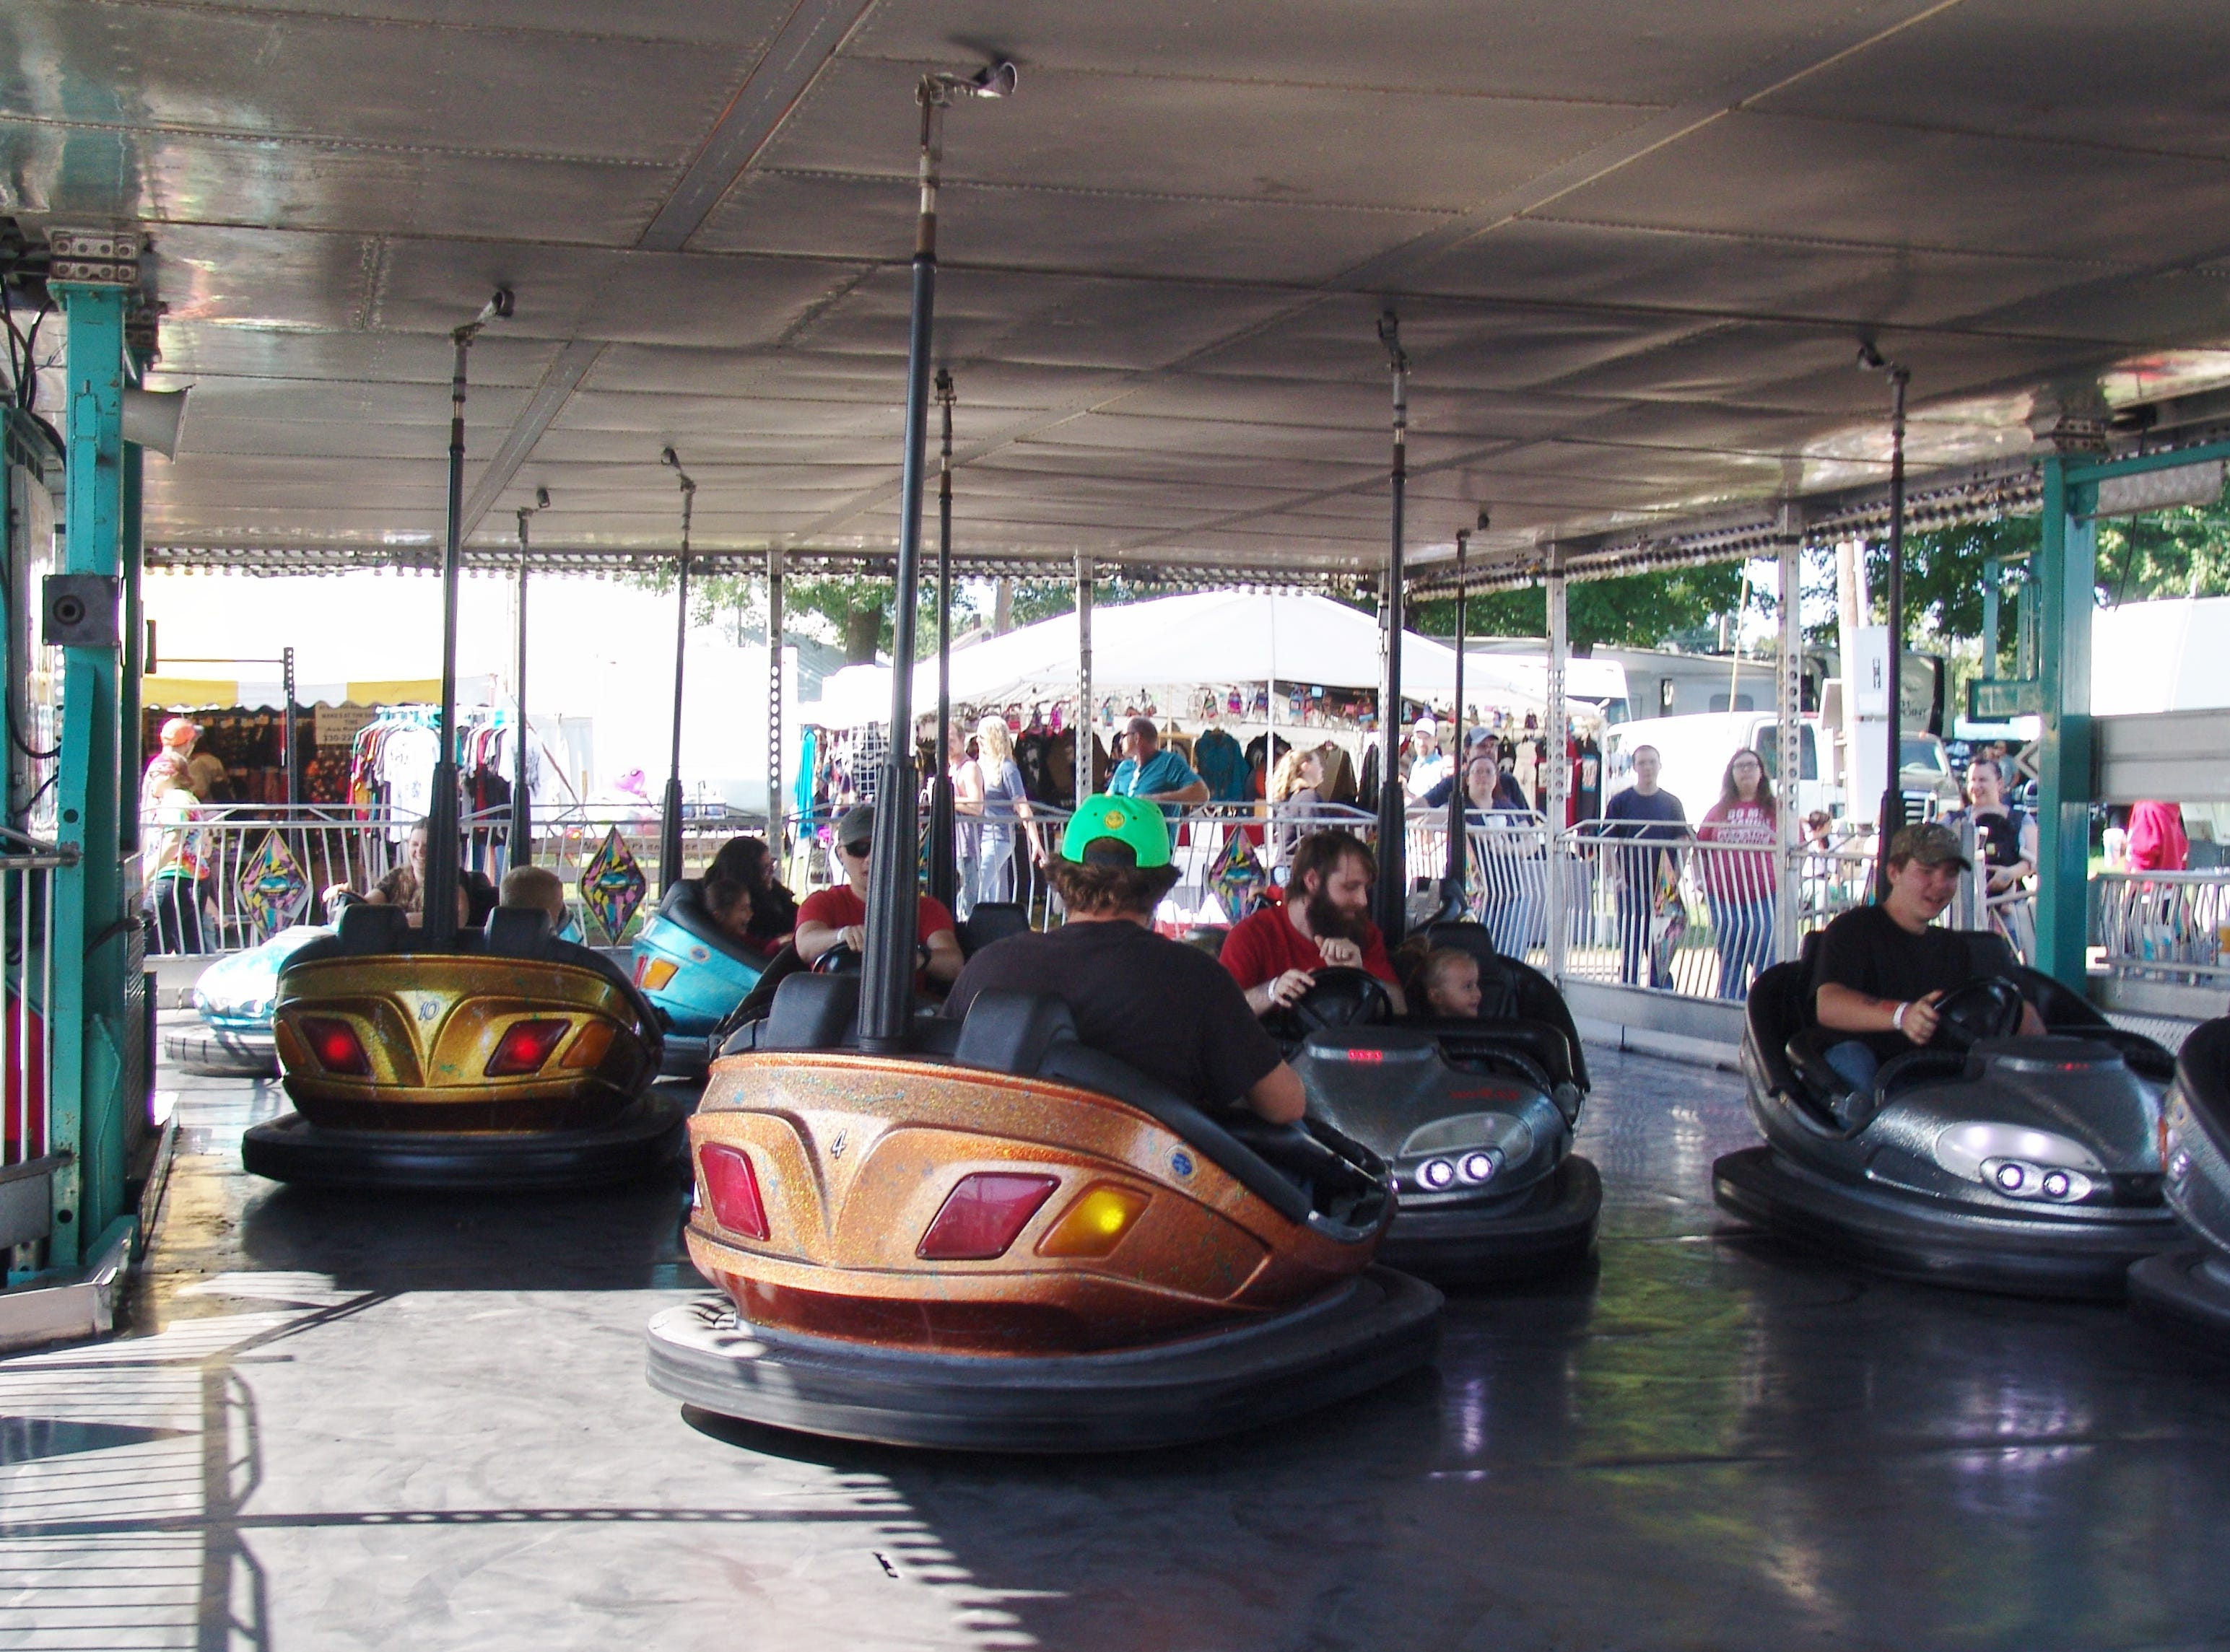 Fair goers ride the bumper cars Sunday at the Coshocton County Fair.